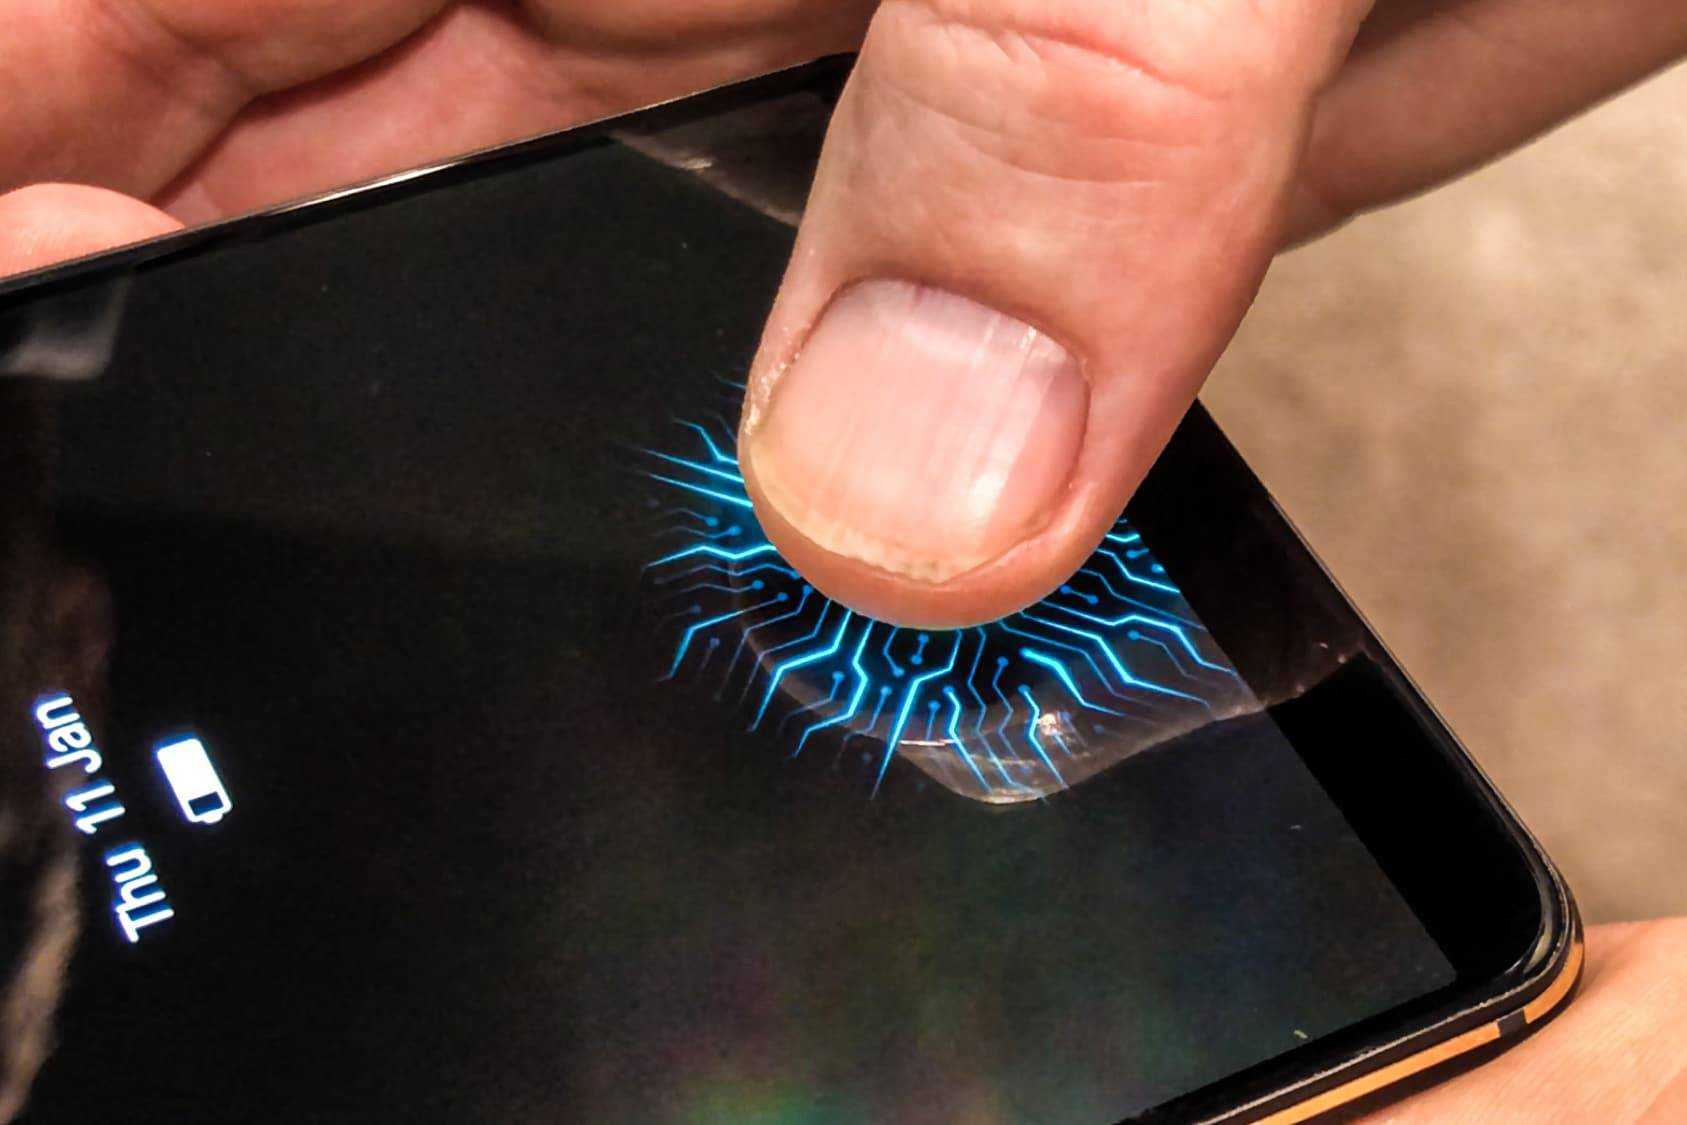 A new phone from Chinese maker Vivo has its fingerprint reader embedded in its screen, using a technology from Synaptics.